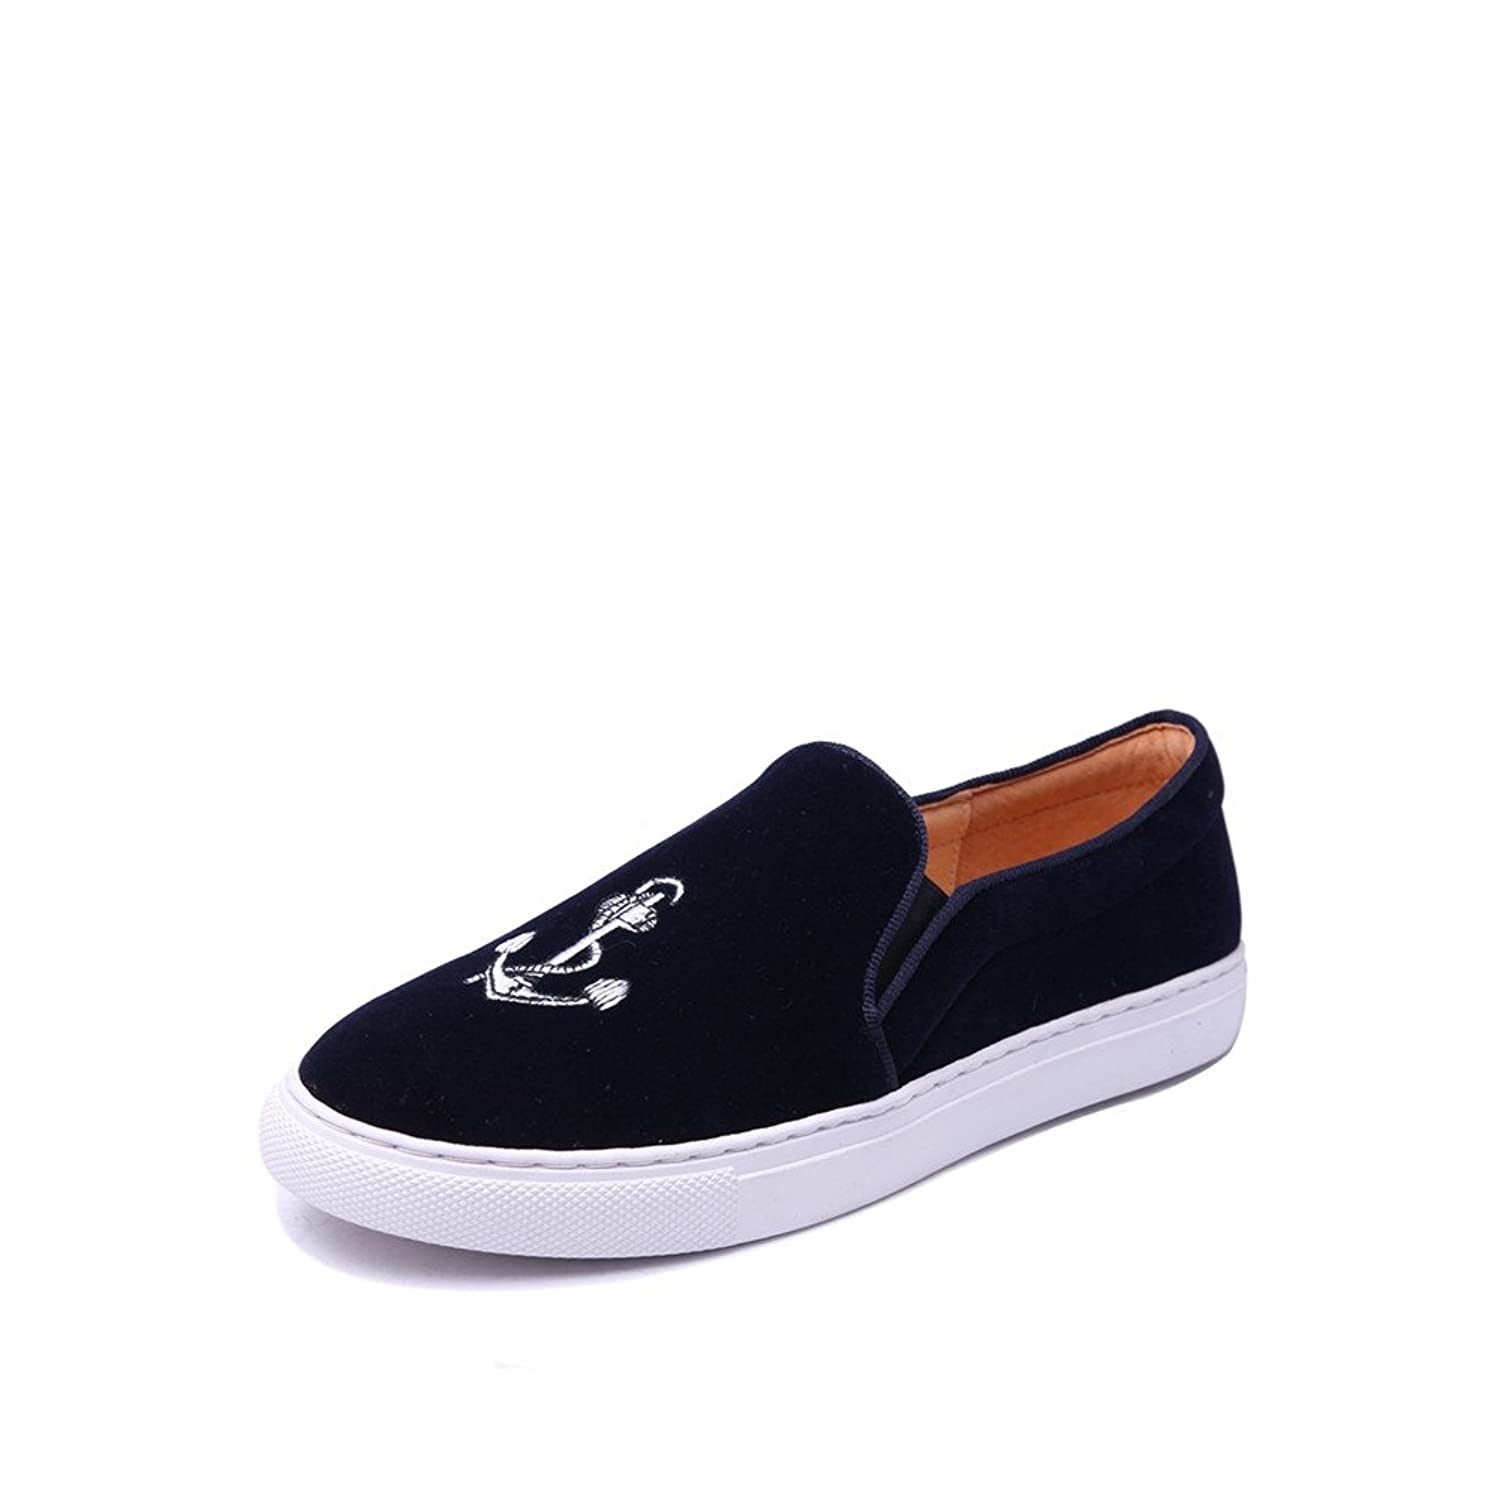 Nine Seven Women's Suede Round Toe Casual Loafer